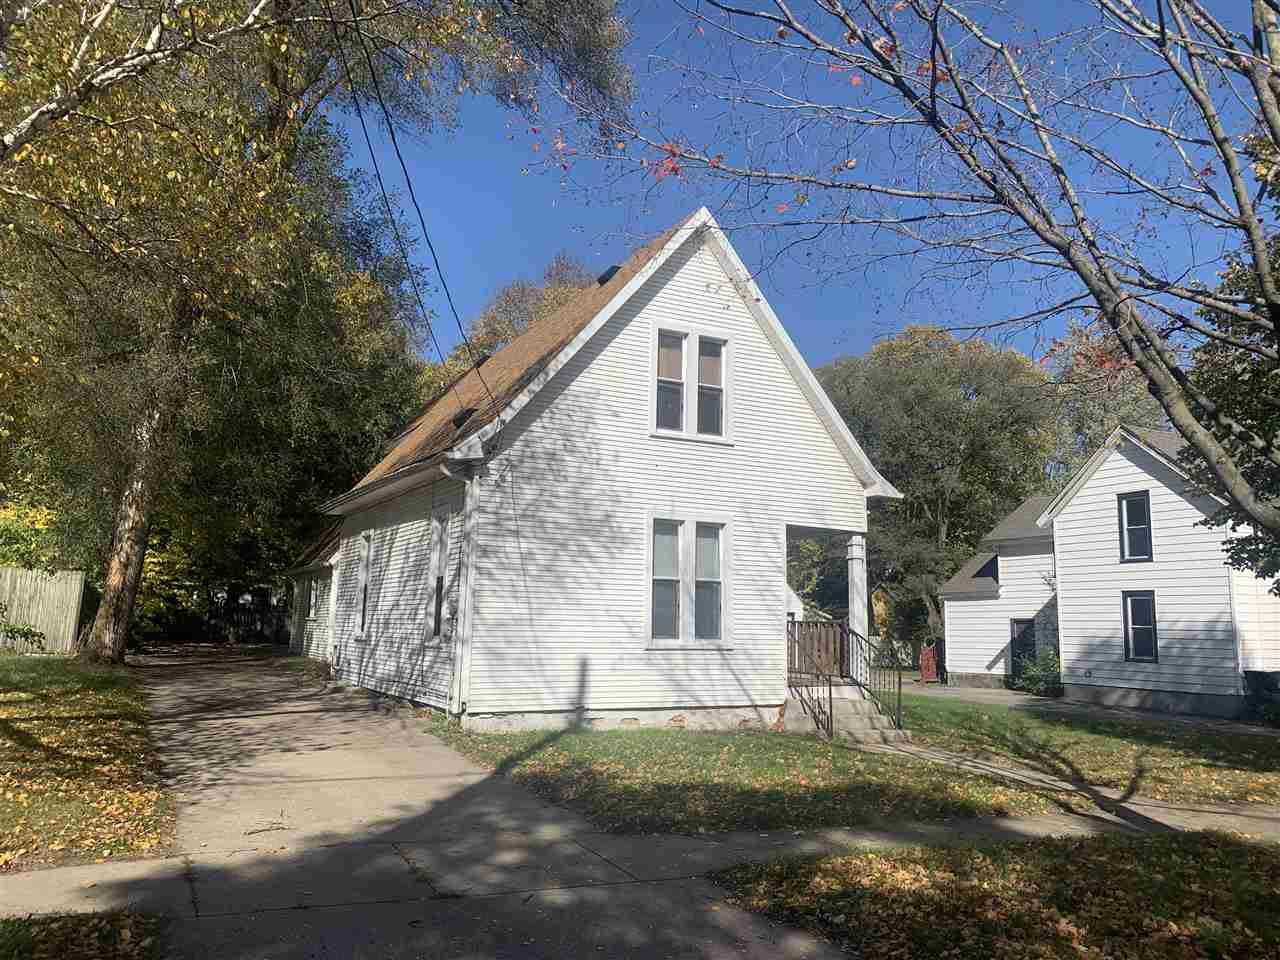 745 Highland Ave, Beloit, WI 53511 - #: 1896445